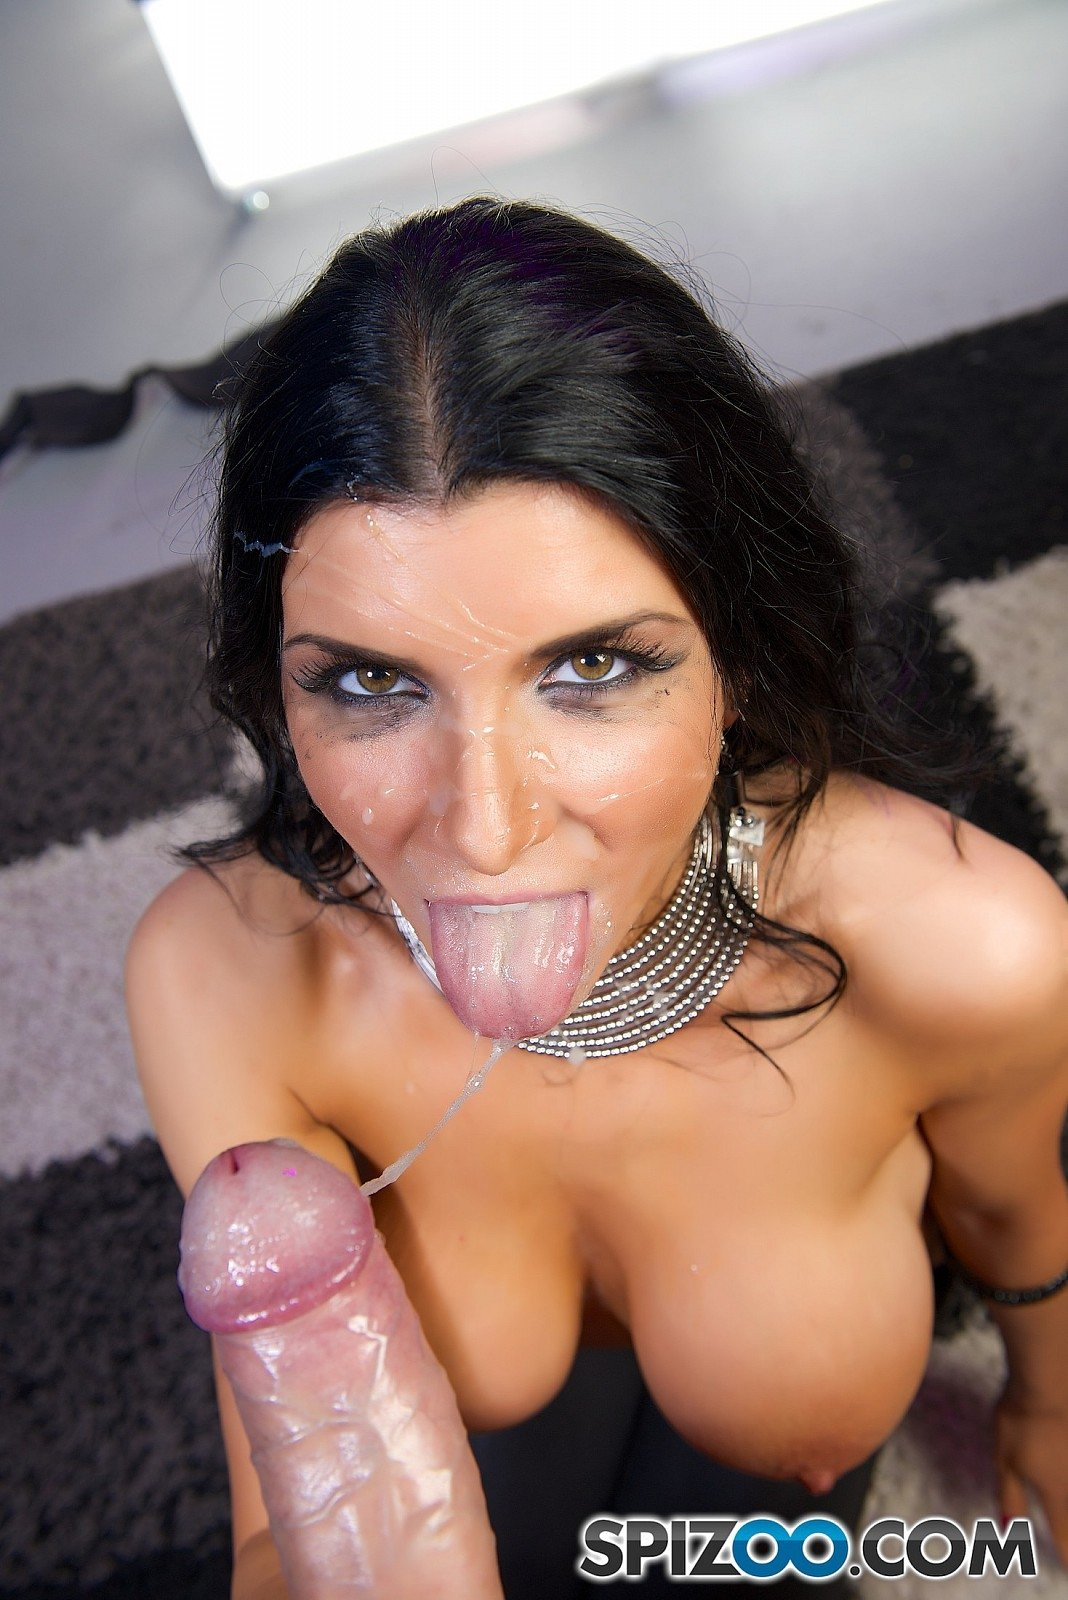 Horny little angel likes it rough in various positions there